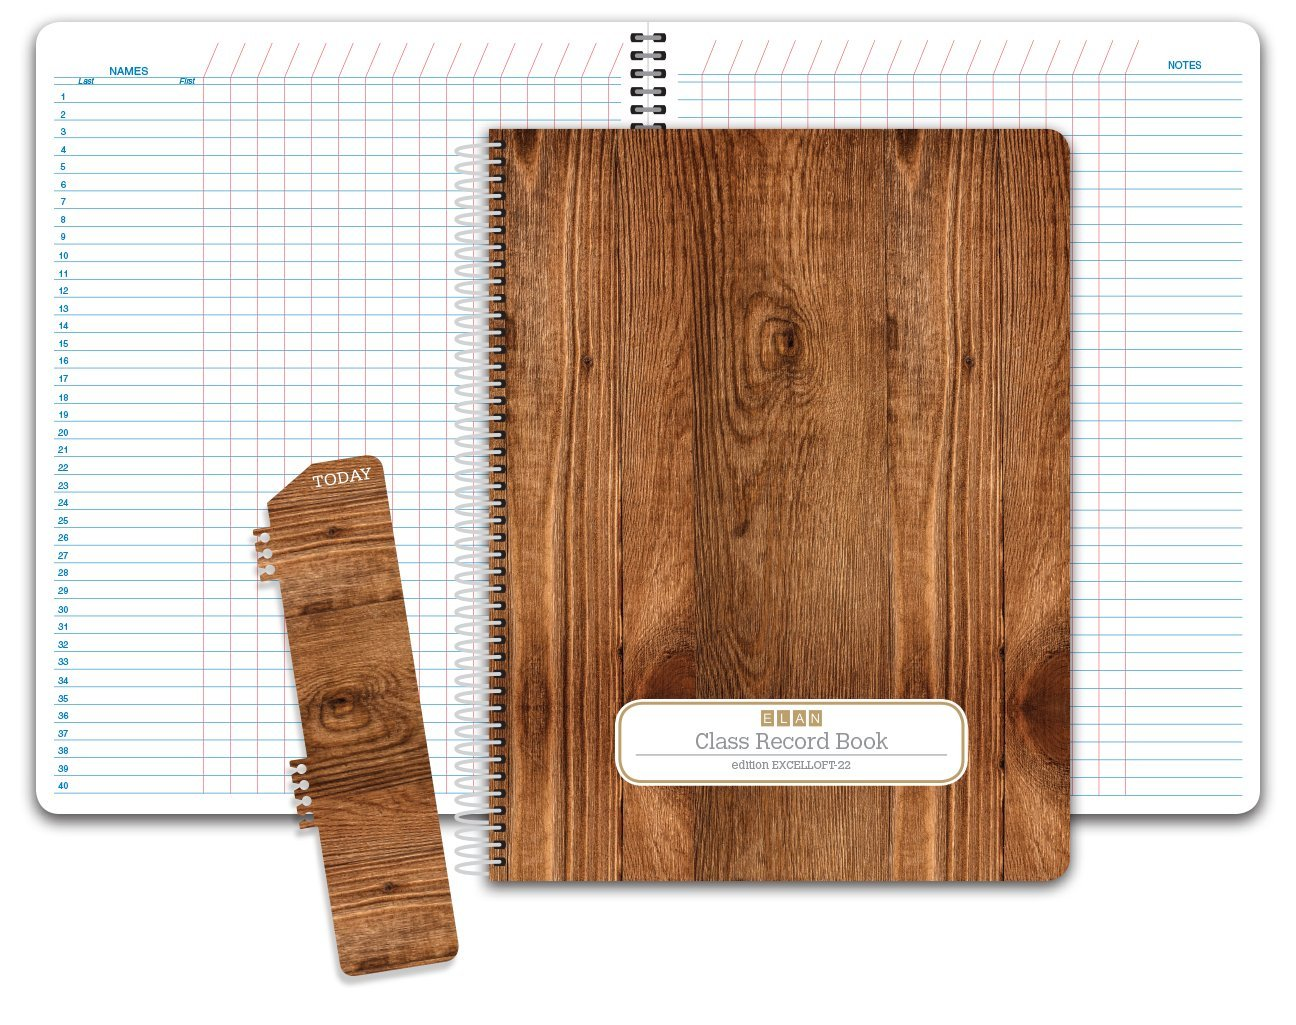 Class Record Book Unstructured.Set it up to Record Grades Your Way! 40 Student Names (Excello - Woodgrain) ELAN Publishing Company EXCELLOFT-22